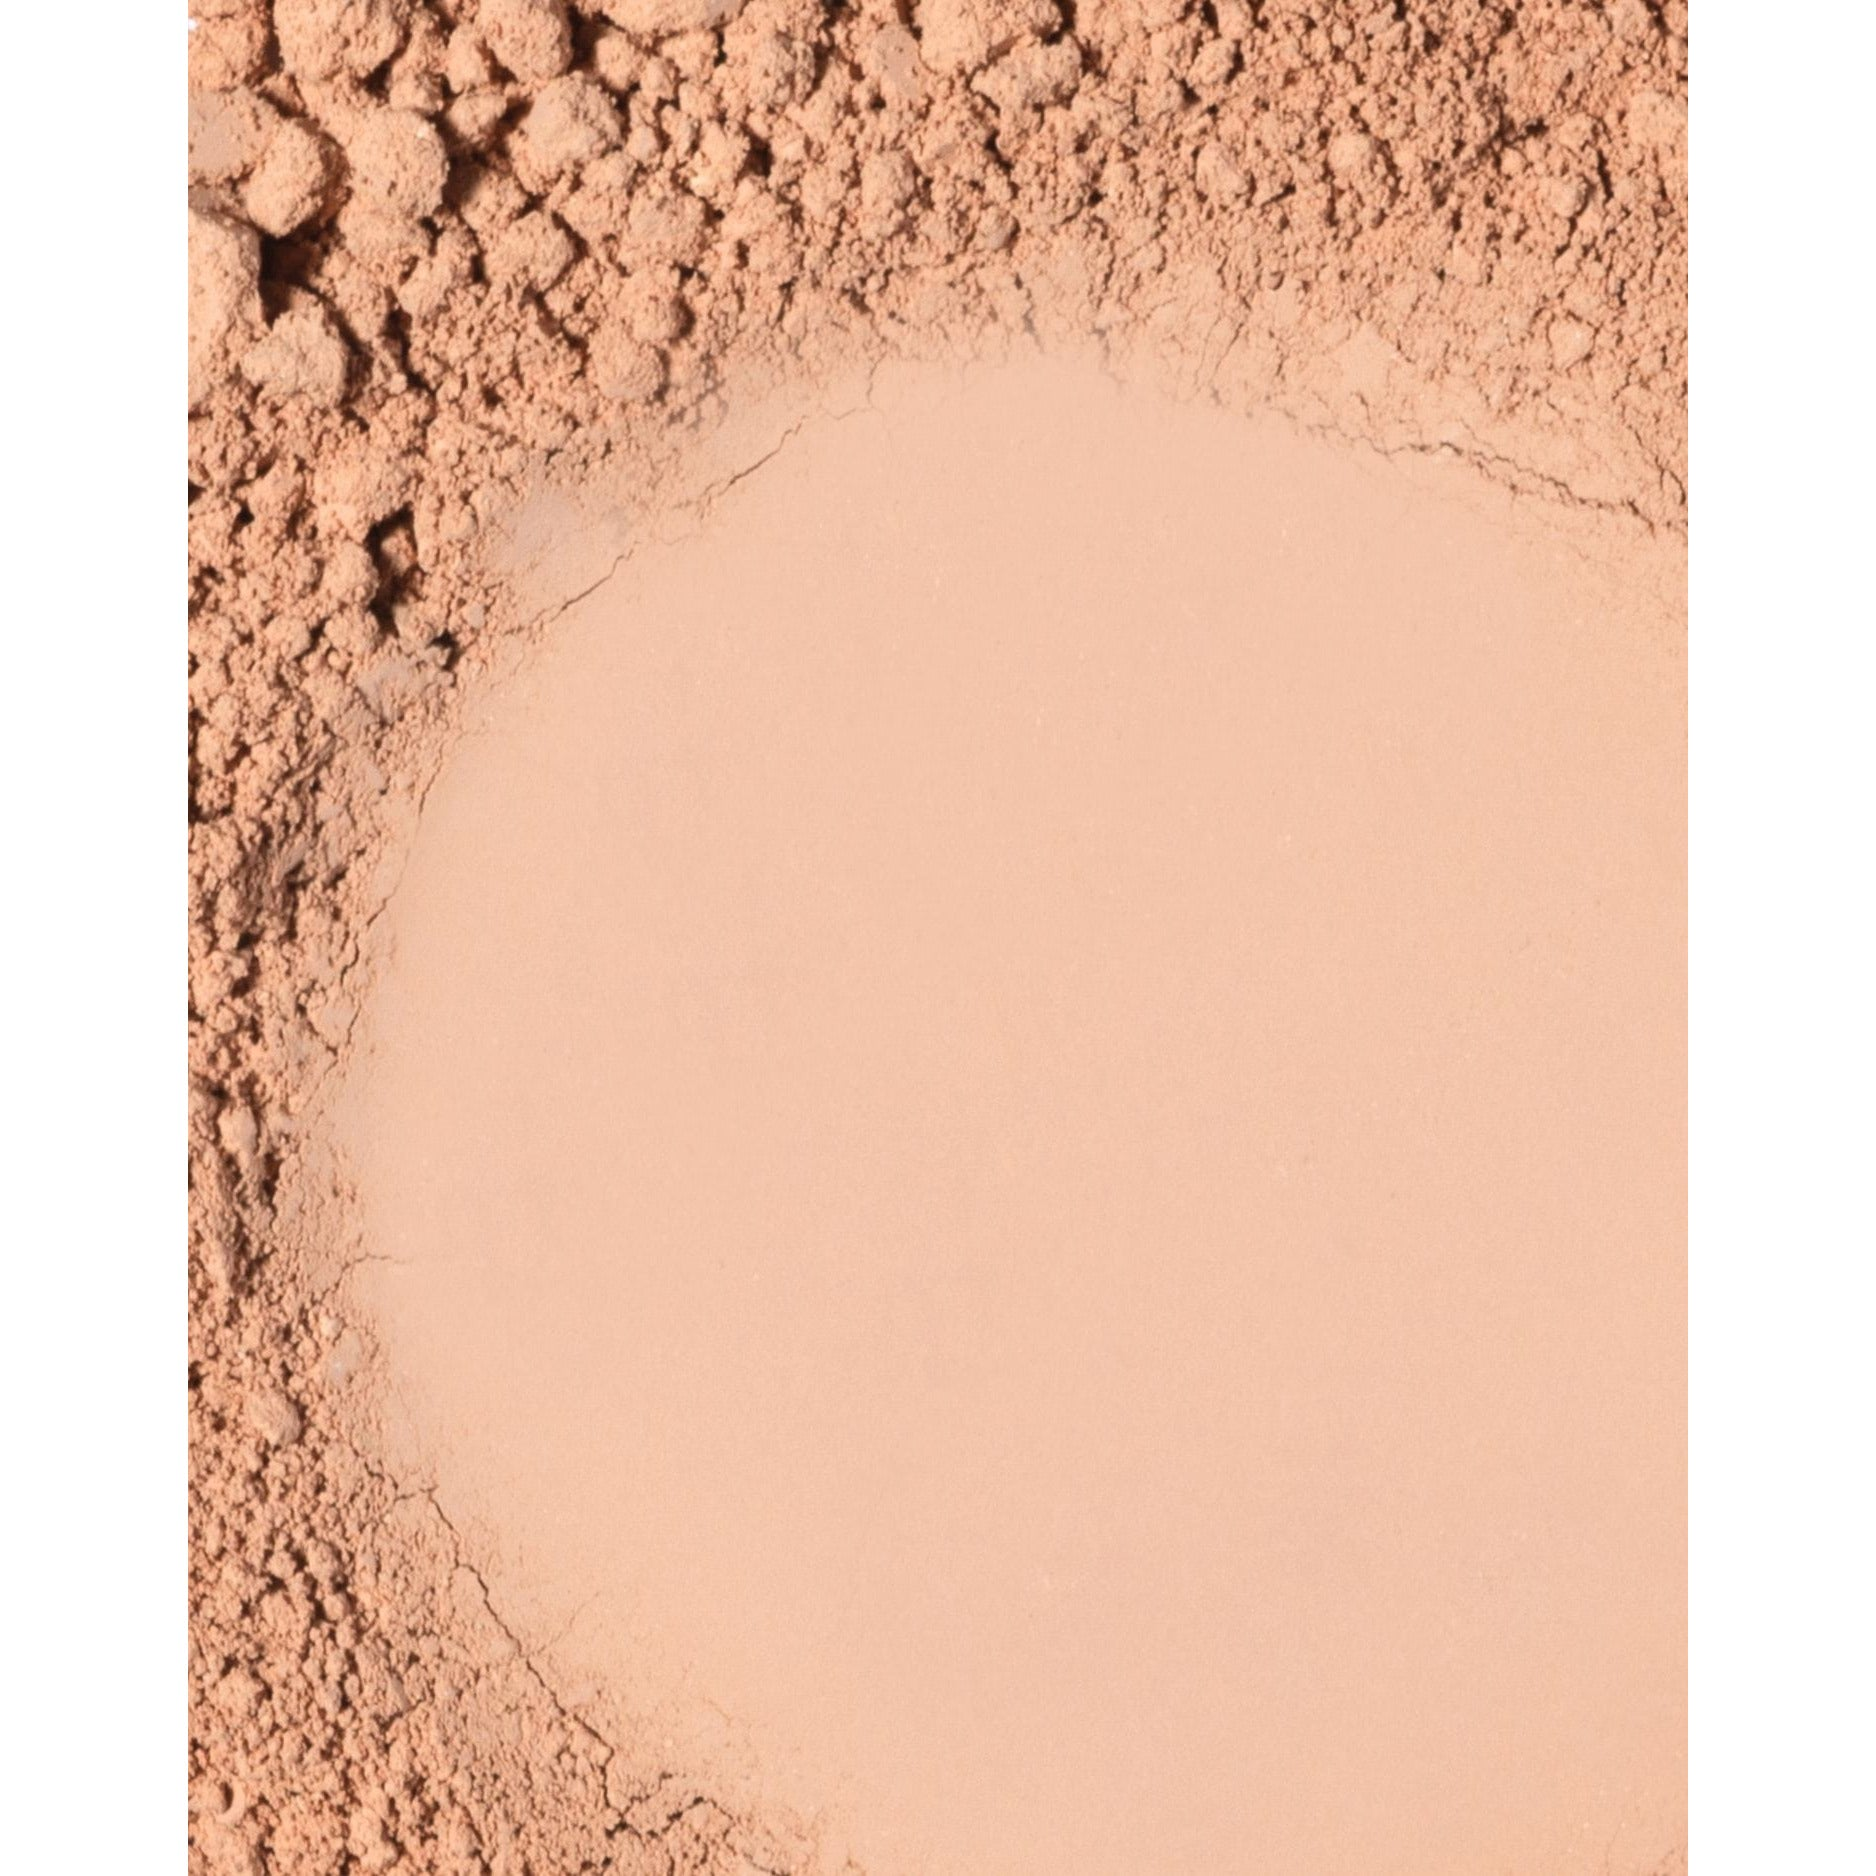 Courageous - Omiana Loose Powder Mineral Foundation No Titanium Dioxide and No Mica